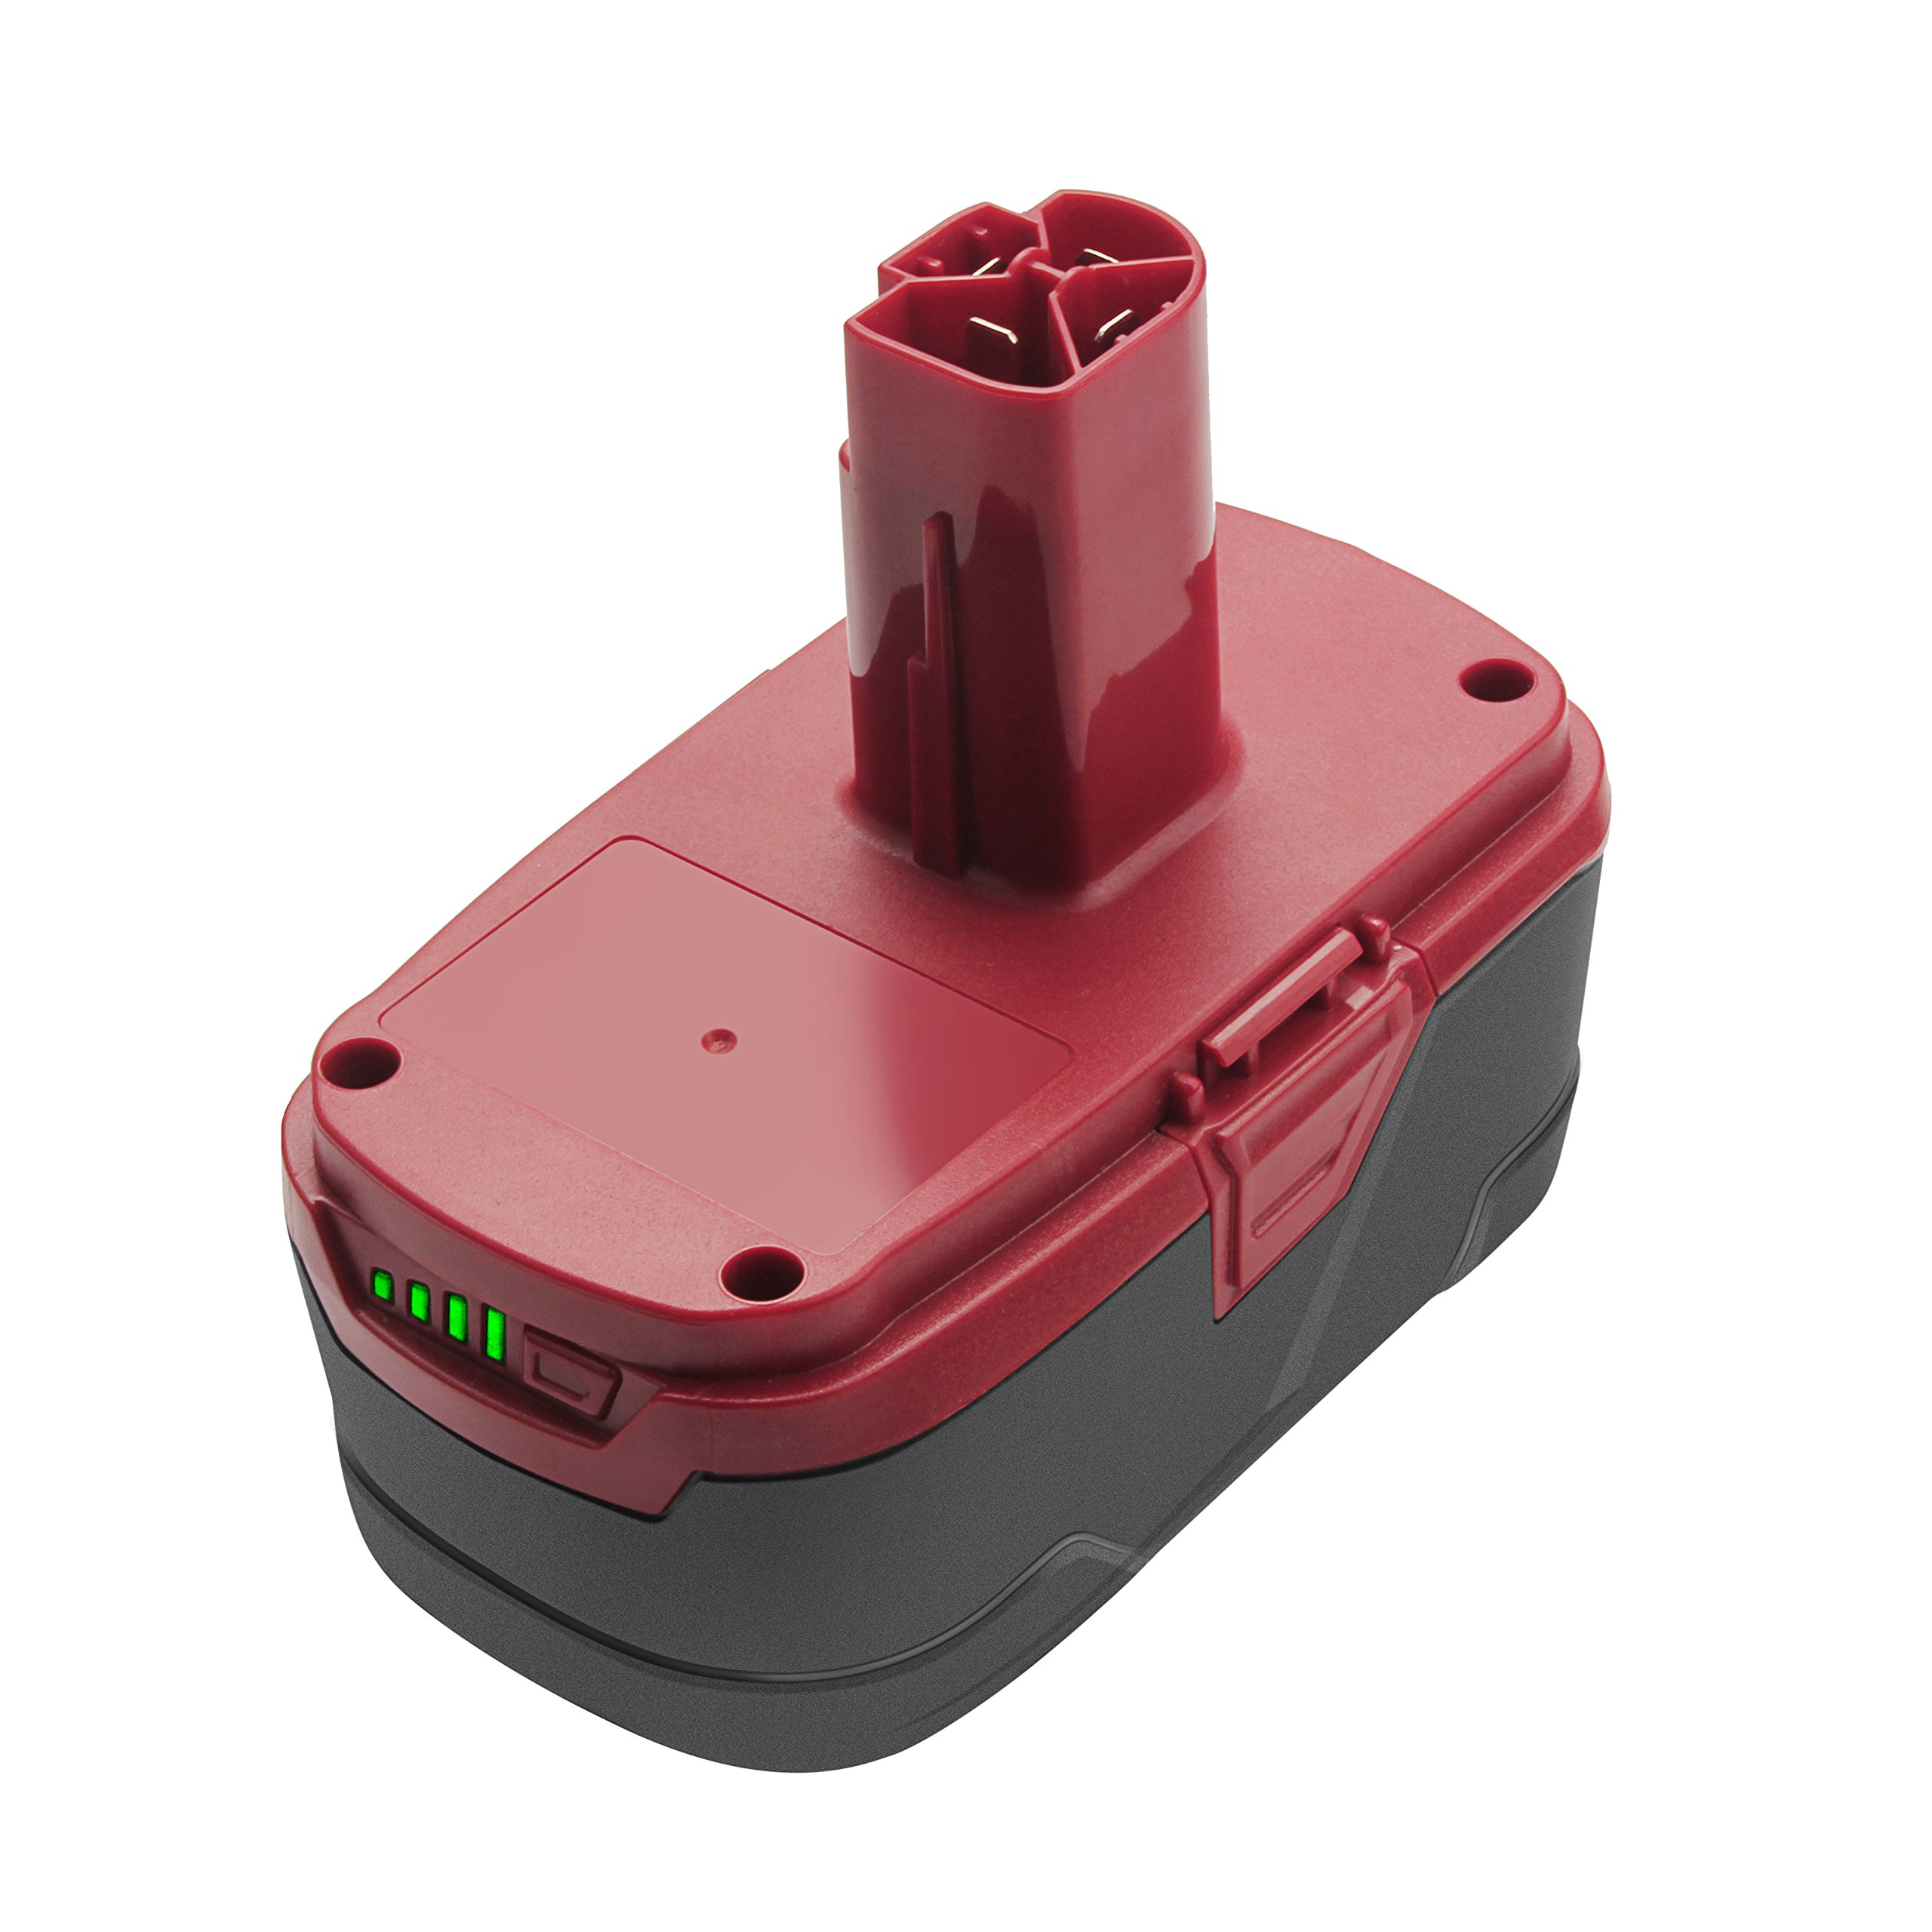 Turpow 6.0Ah 19.2-Volt Lithium Ion Battery Replacement for Craftsman C3 Battery XCP Craftsman 19.2-Volt Battery 130279005 1323903 130211004 11045 315.115410 315.11485